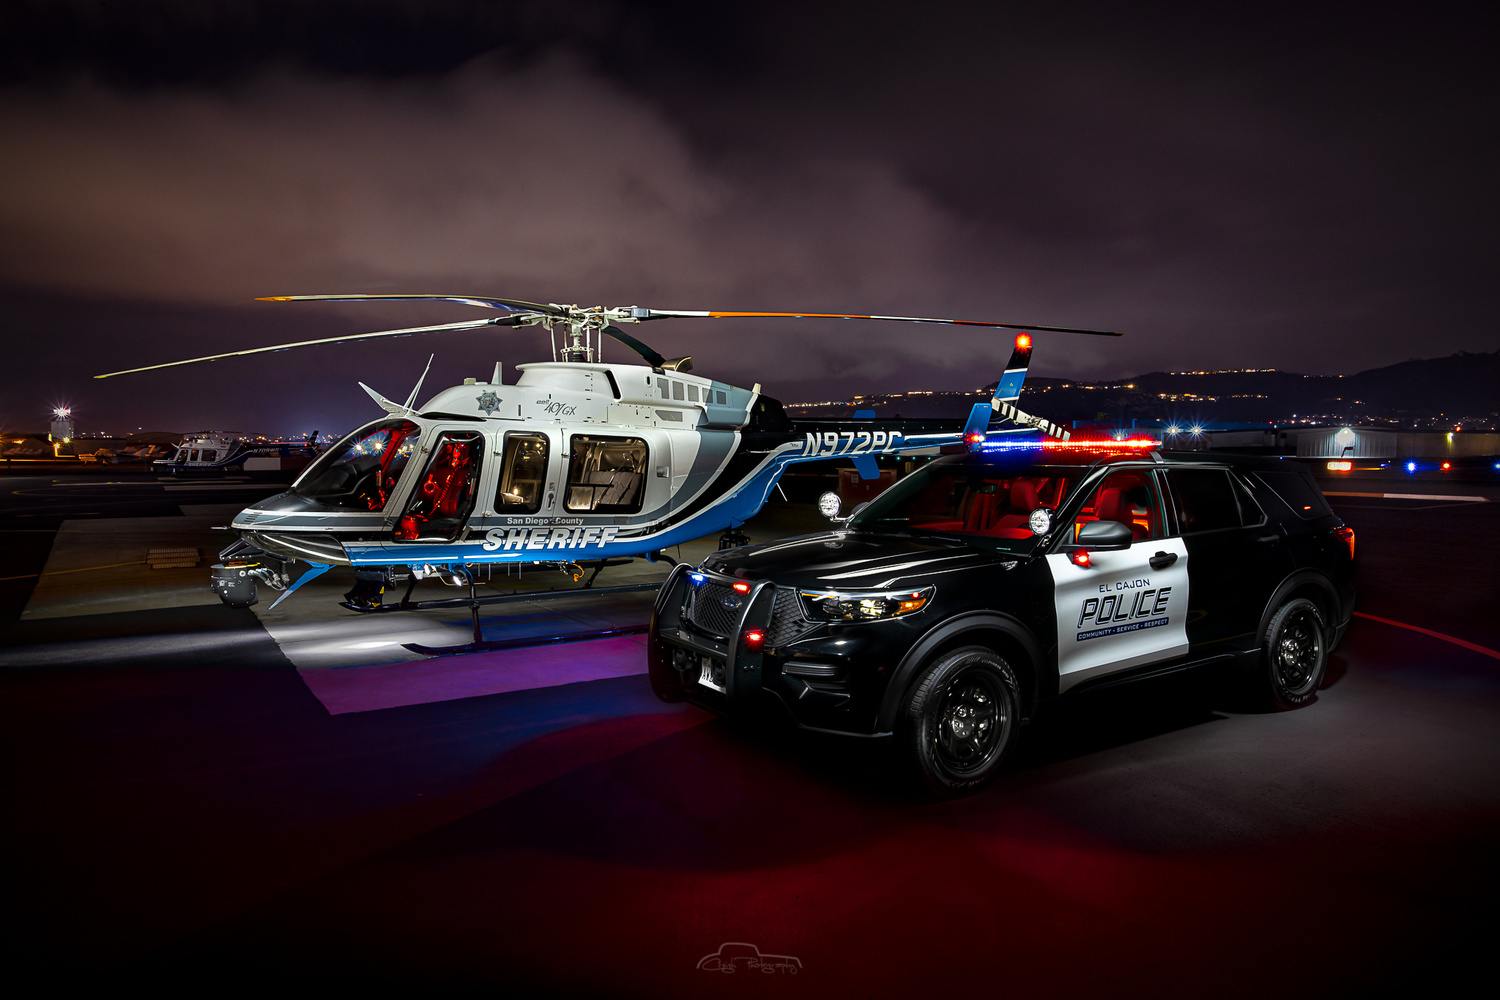 El Cajon PD with SD Sheriff's Dept ASTREA Bell 407 by Creigh McIntyre